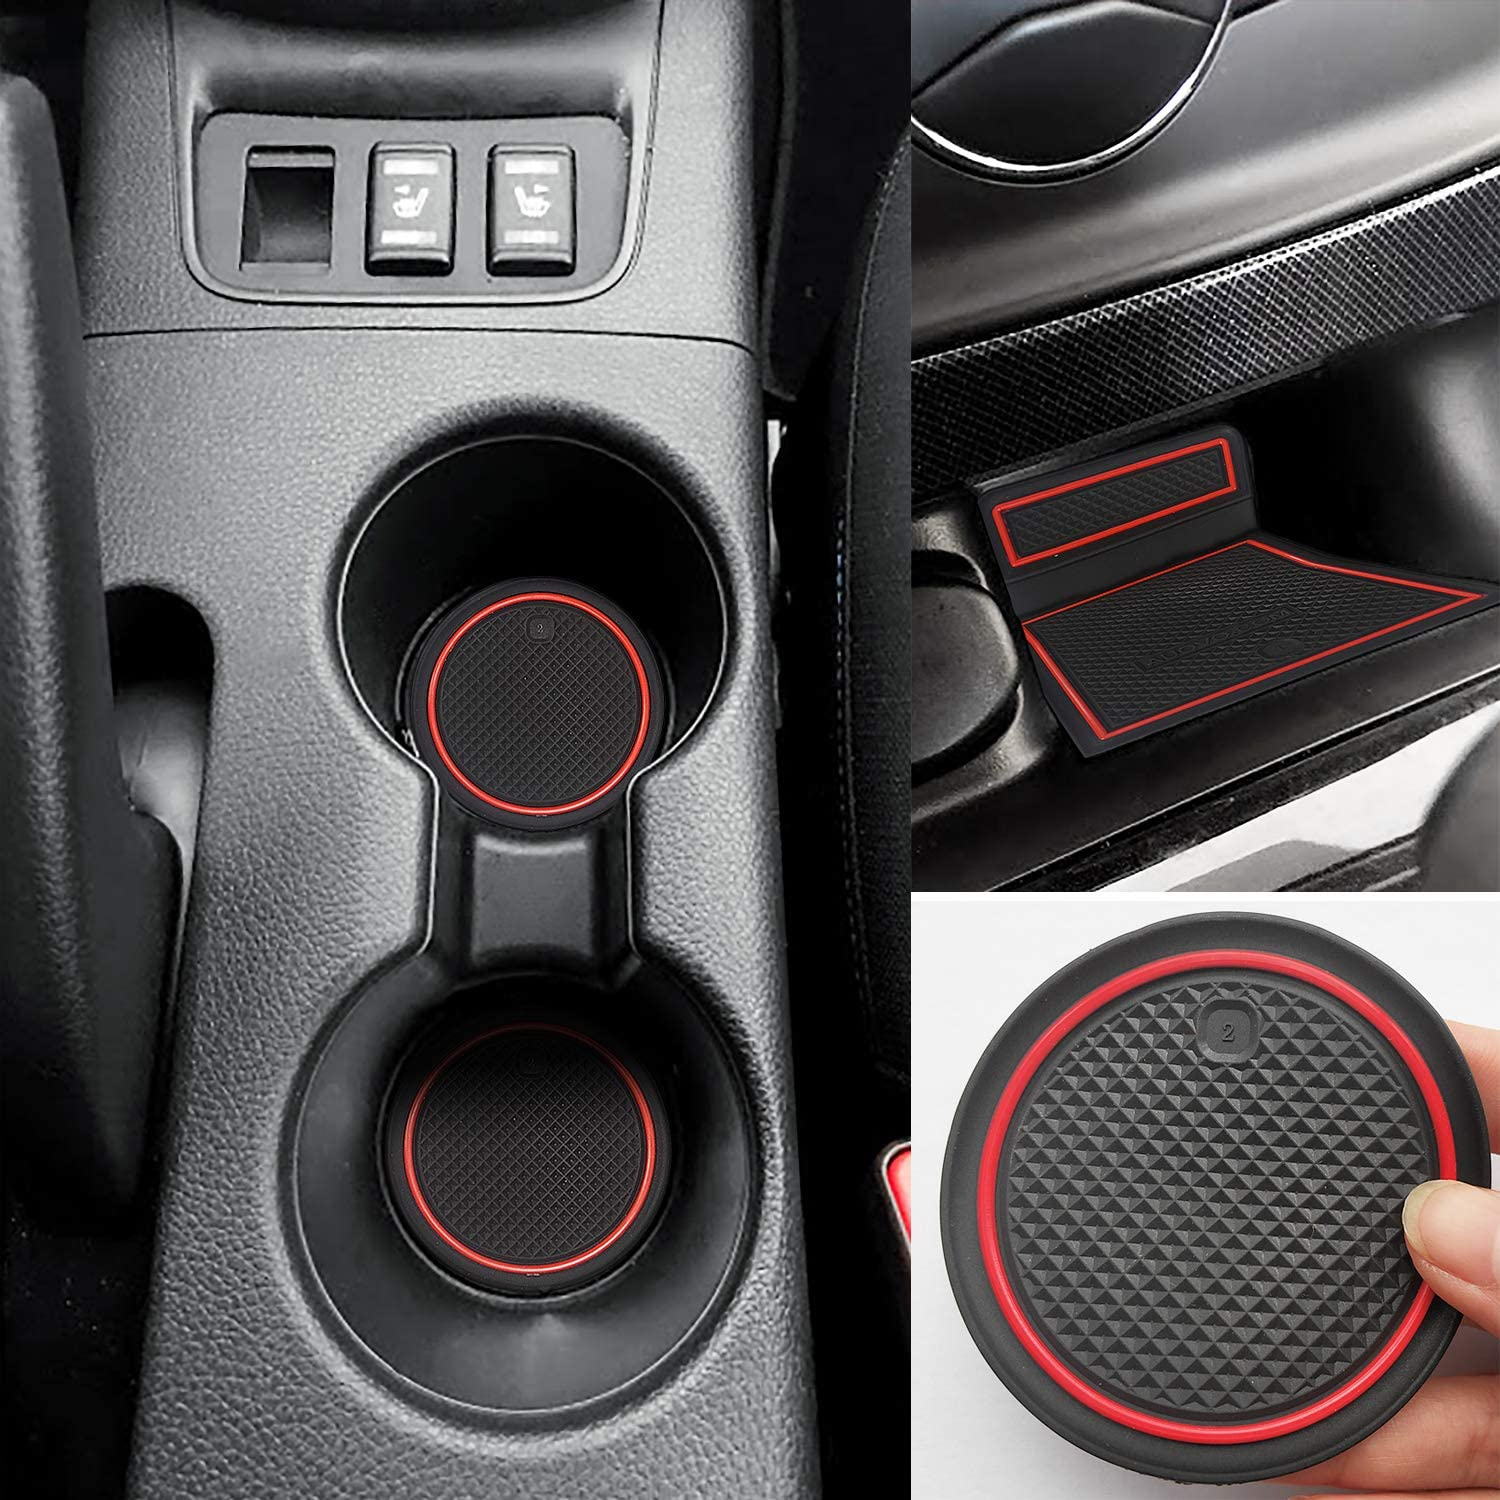 15pcs//Set blue Auovo Anti-dust Door Mats Custom Fit Cup Door Center Console Liner for Nissan Sentra 2019 2018 2017 2016 2015 2014 2013 Accessories